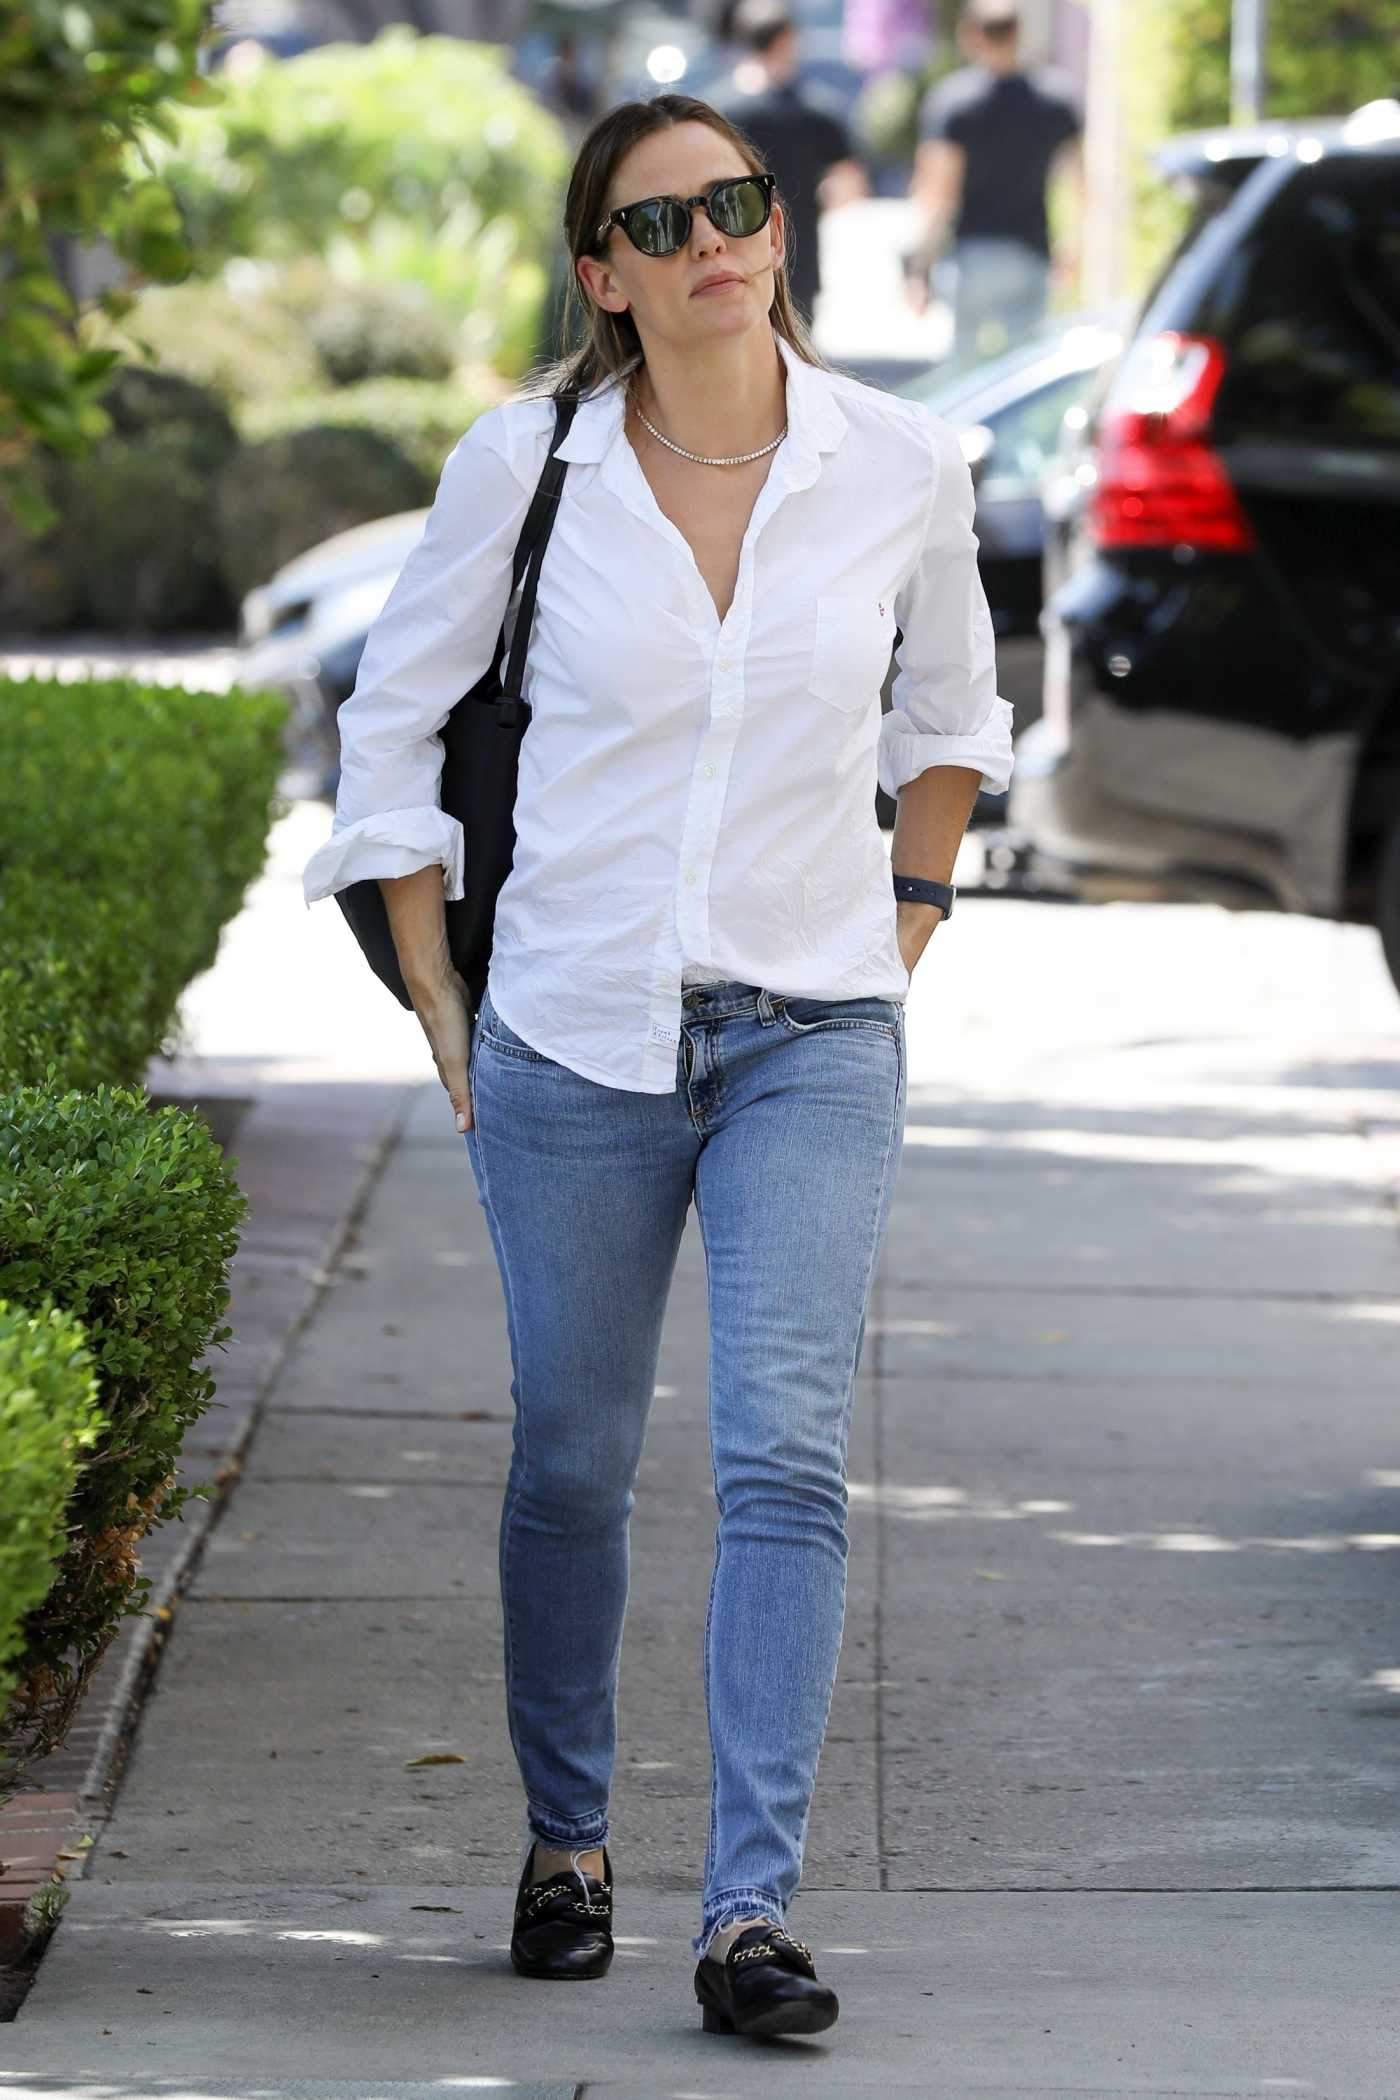 Jennifer Garner in a White Shirt Was Seen Out in Los Angeles 08/06/2019